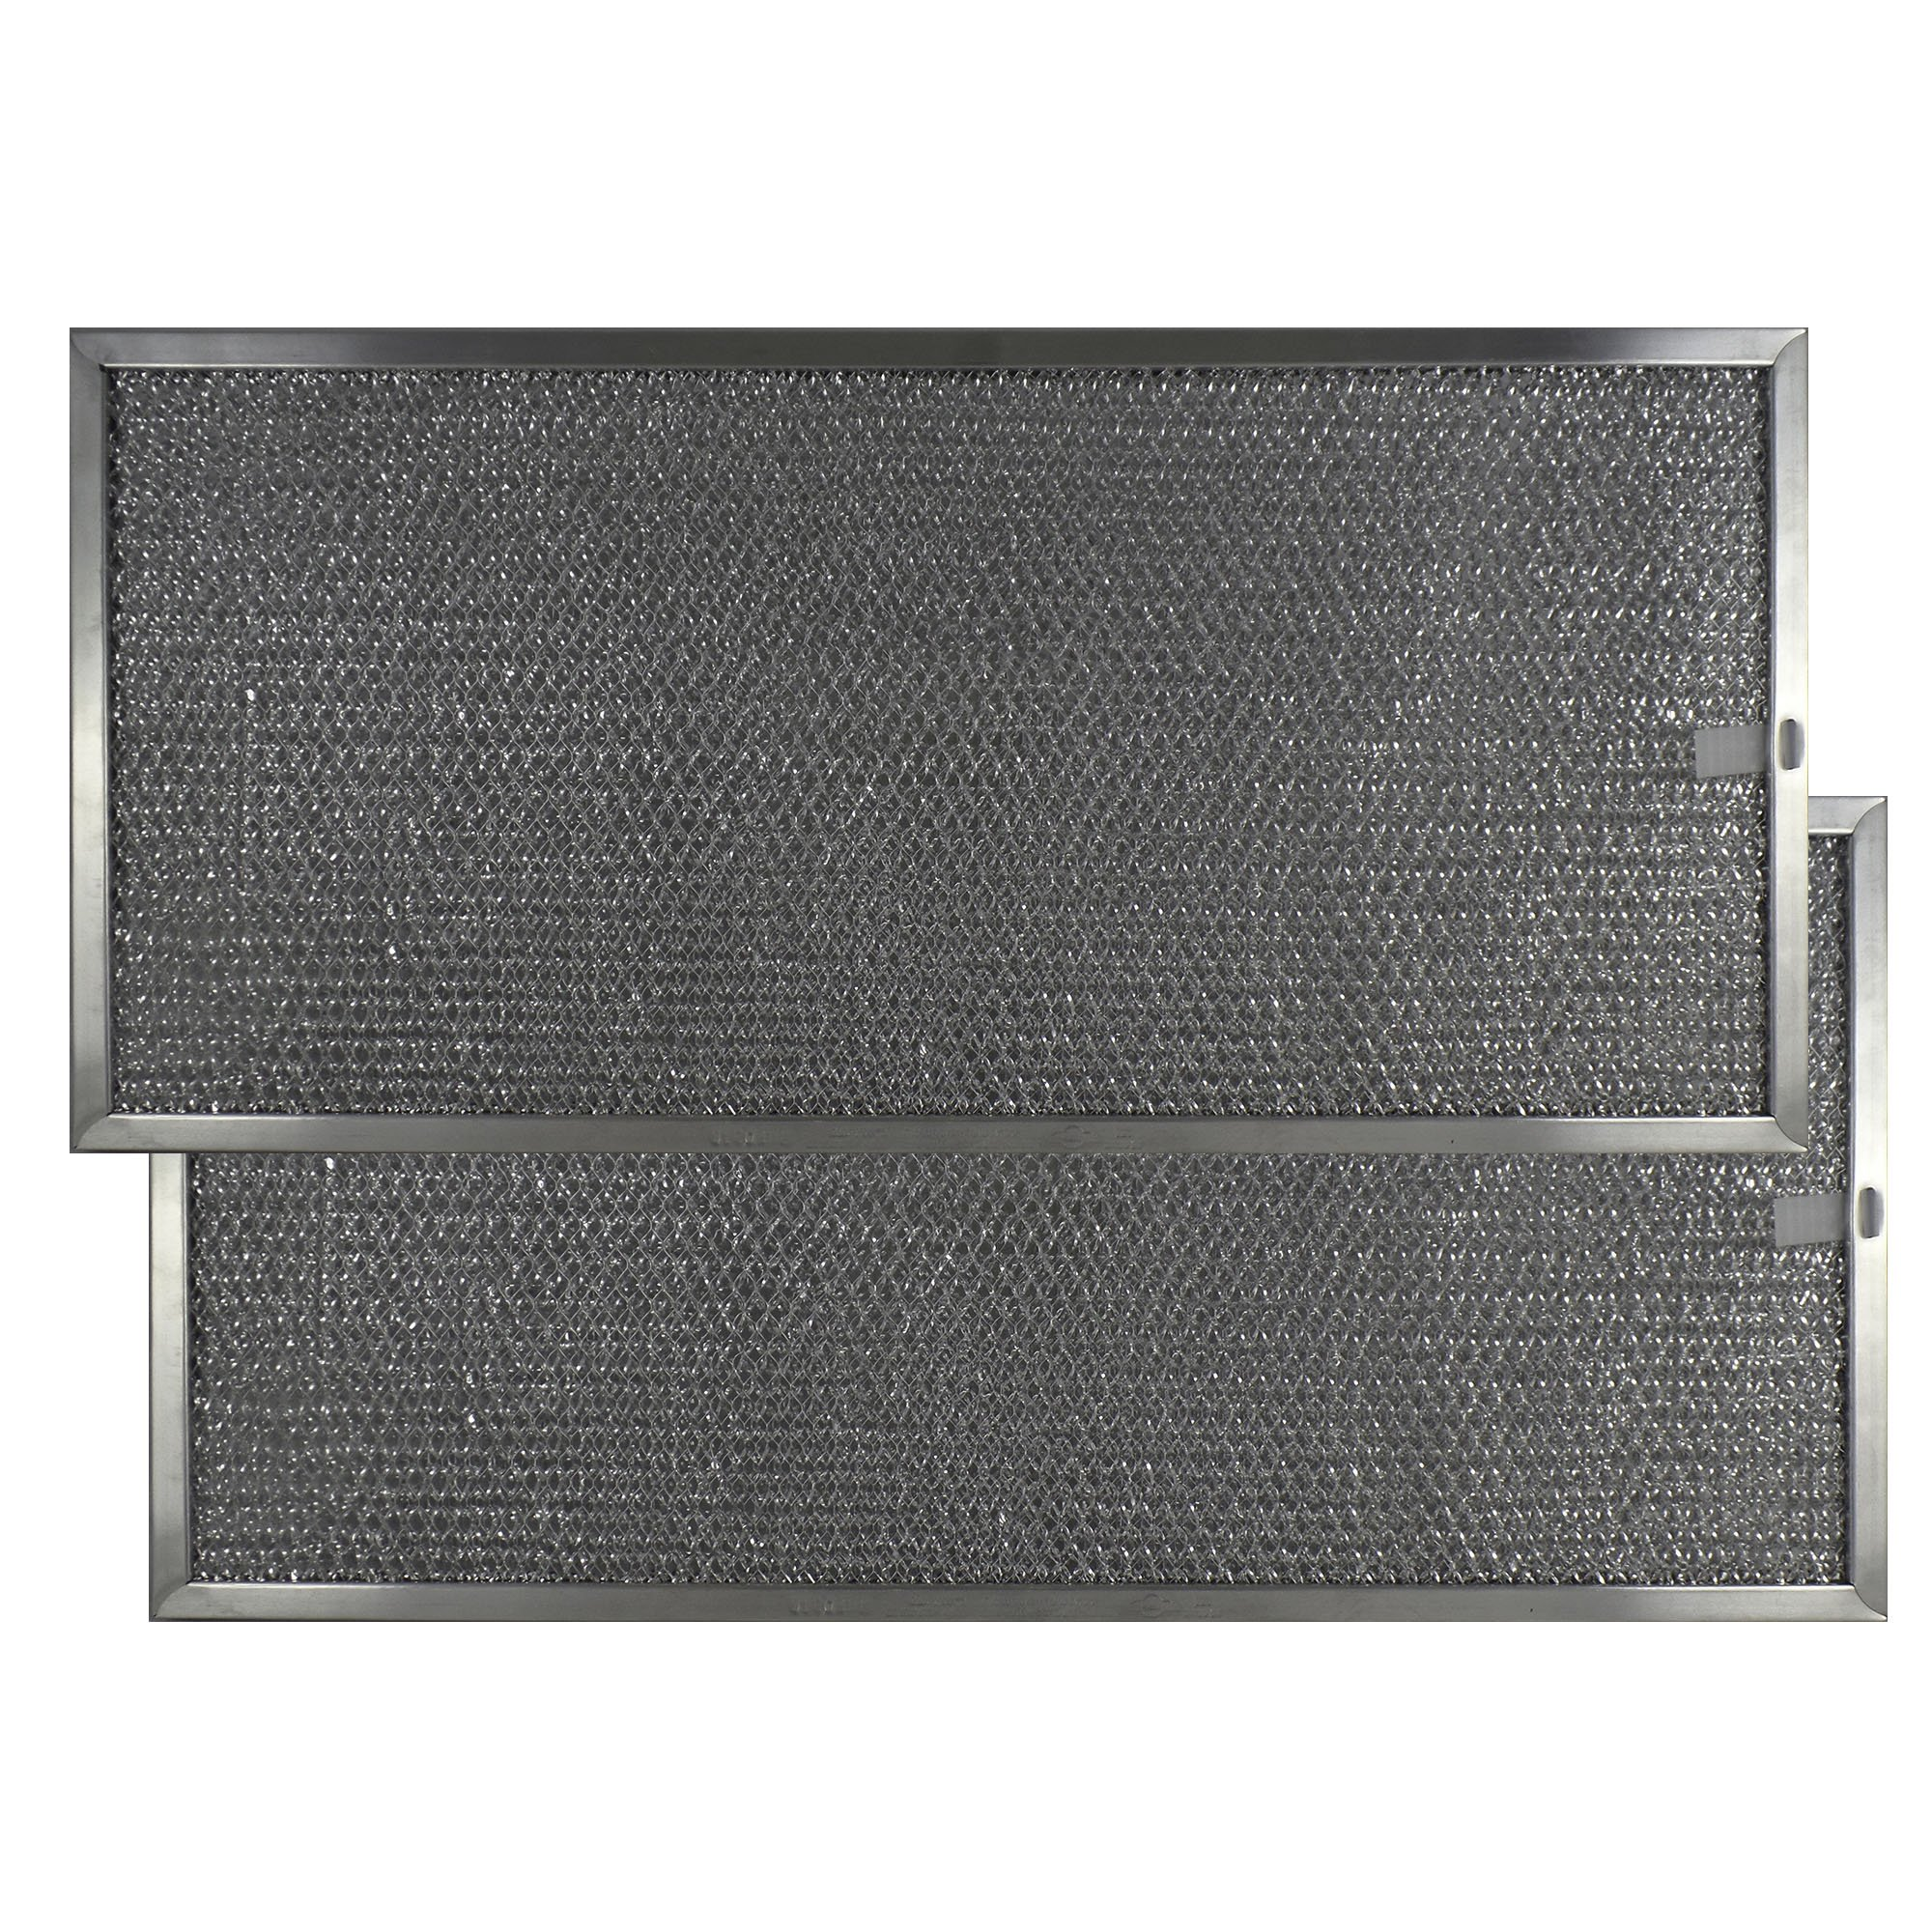 2 PACK Air Filter Factory 9 X 19 X 3/8 Range Hood Aluminum Grease Filters AFF182-M